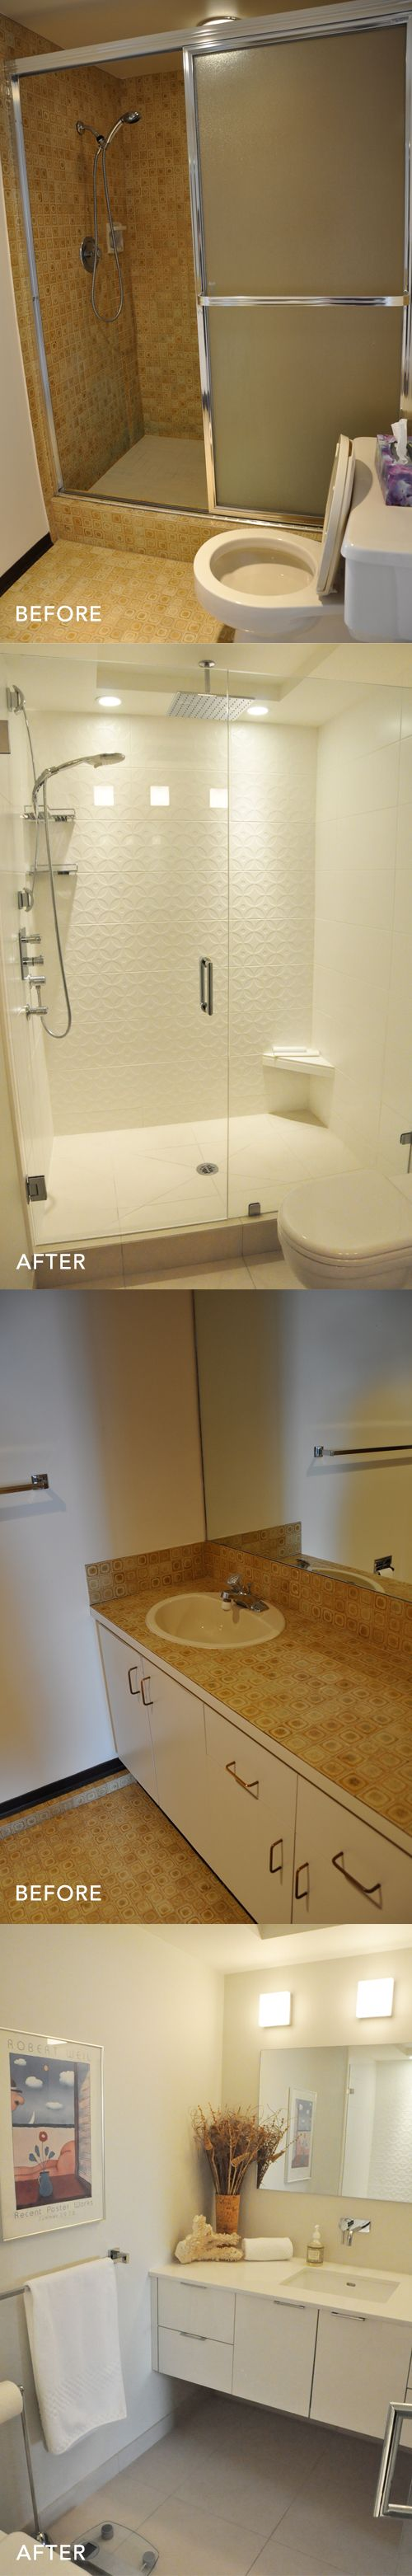 19 best images about before after bathroom makeovers on for Bathroom remodel reno nv